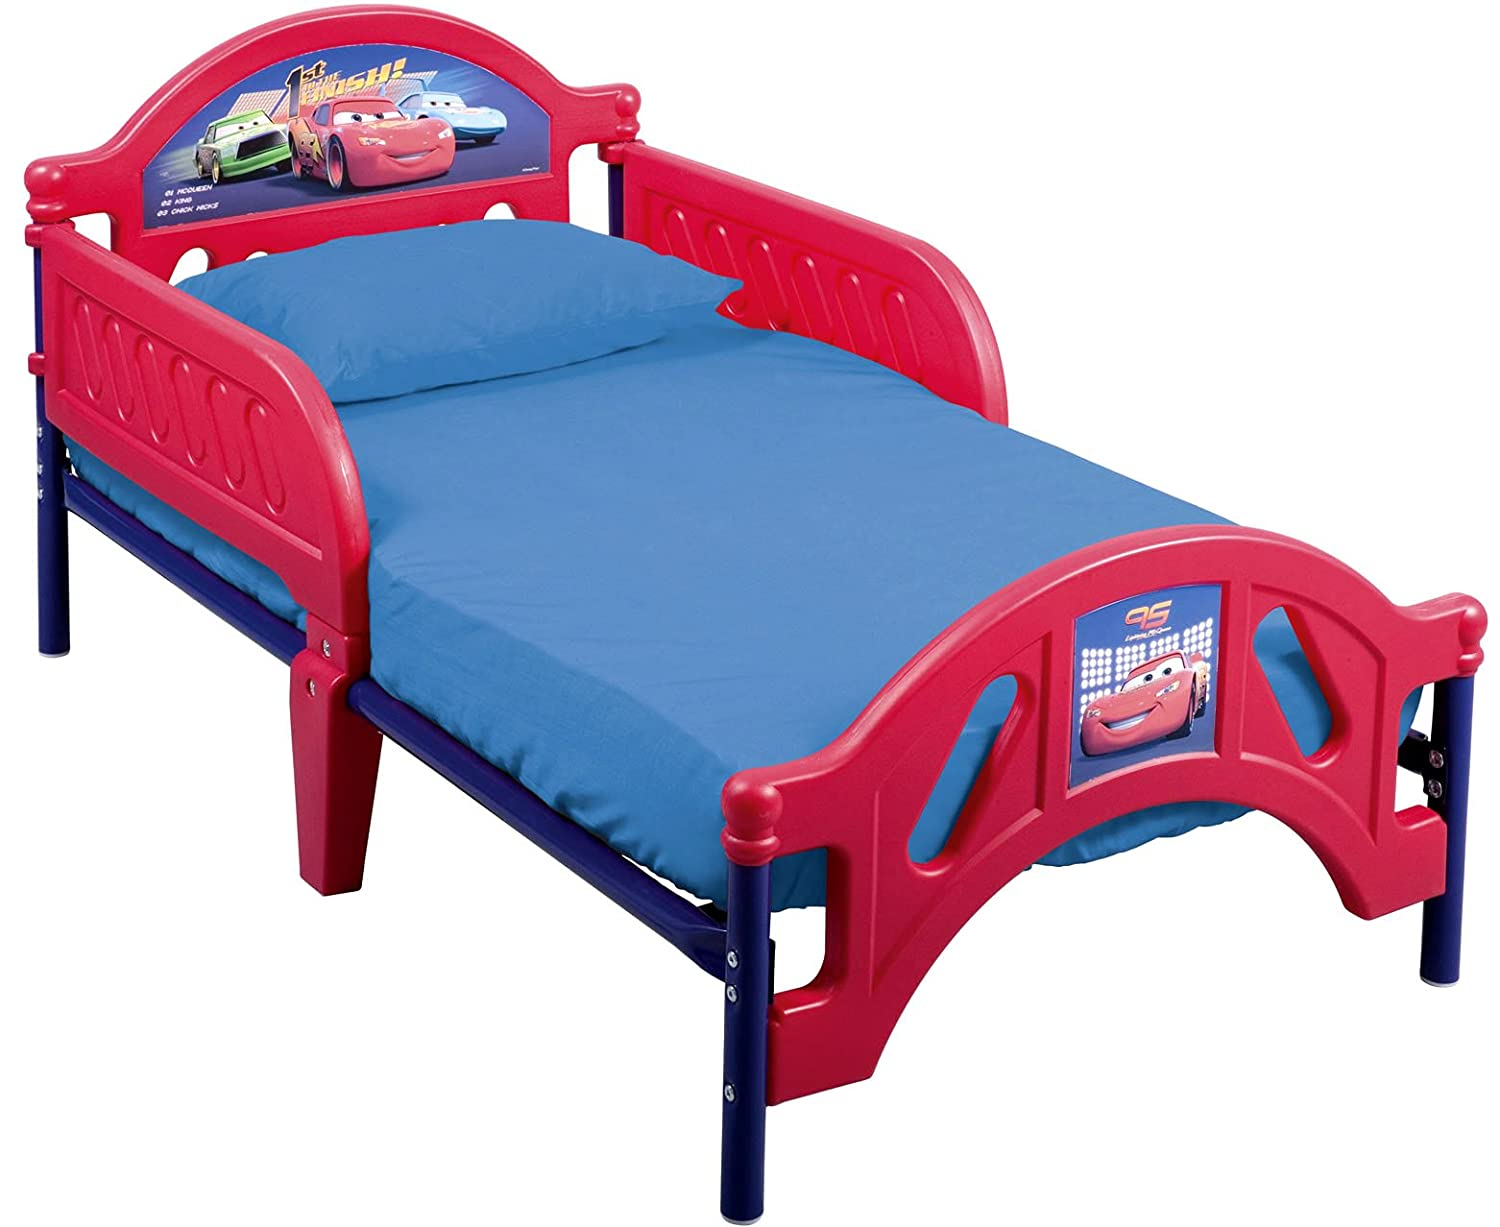 sc 1 st  Amazon.com & Amazon.com: Delta Cars Toddler Bed: Toys u0026 Games